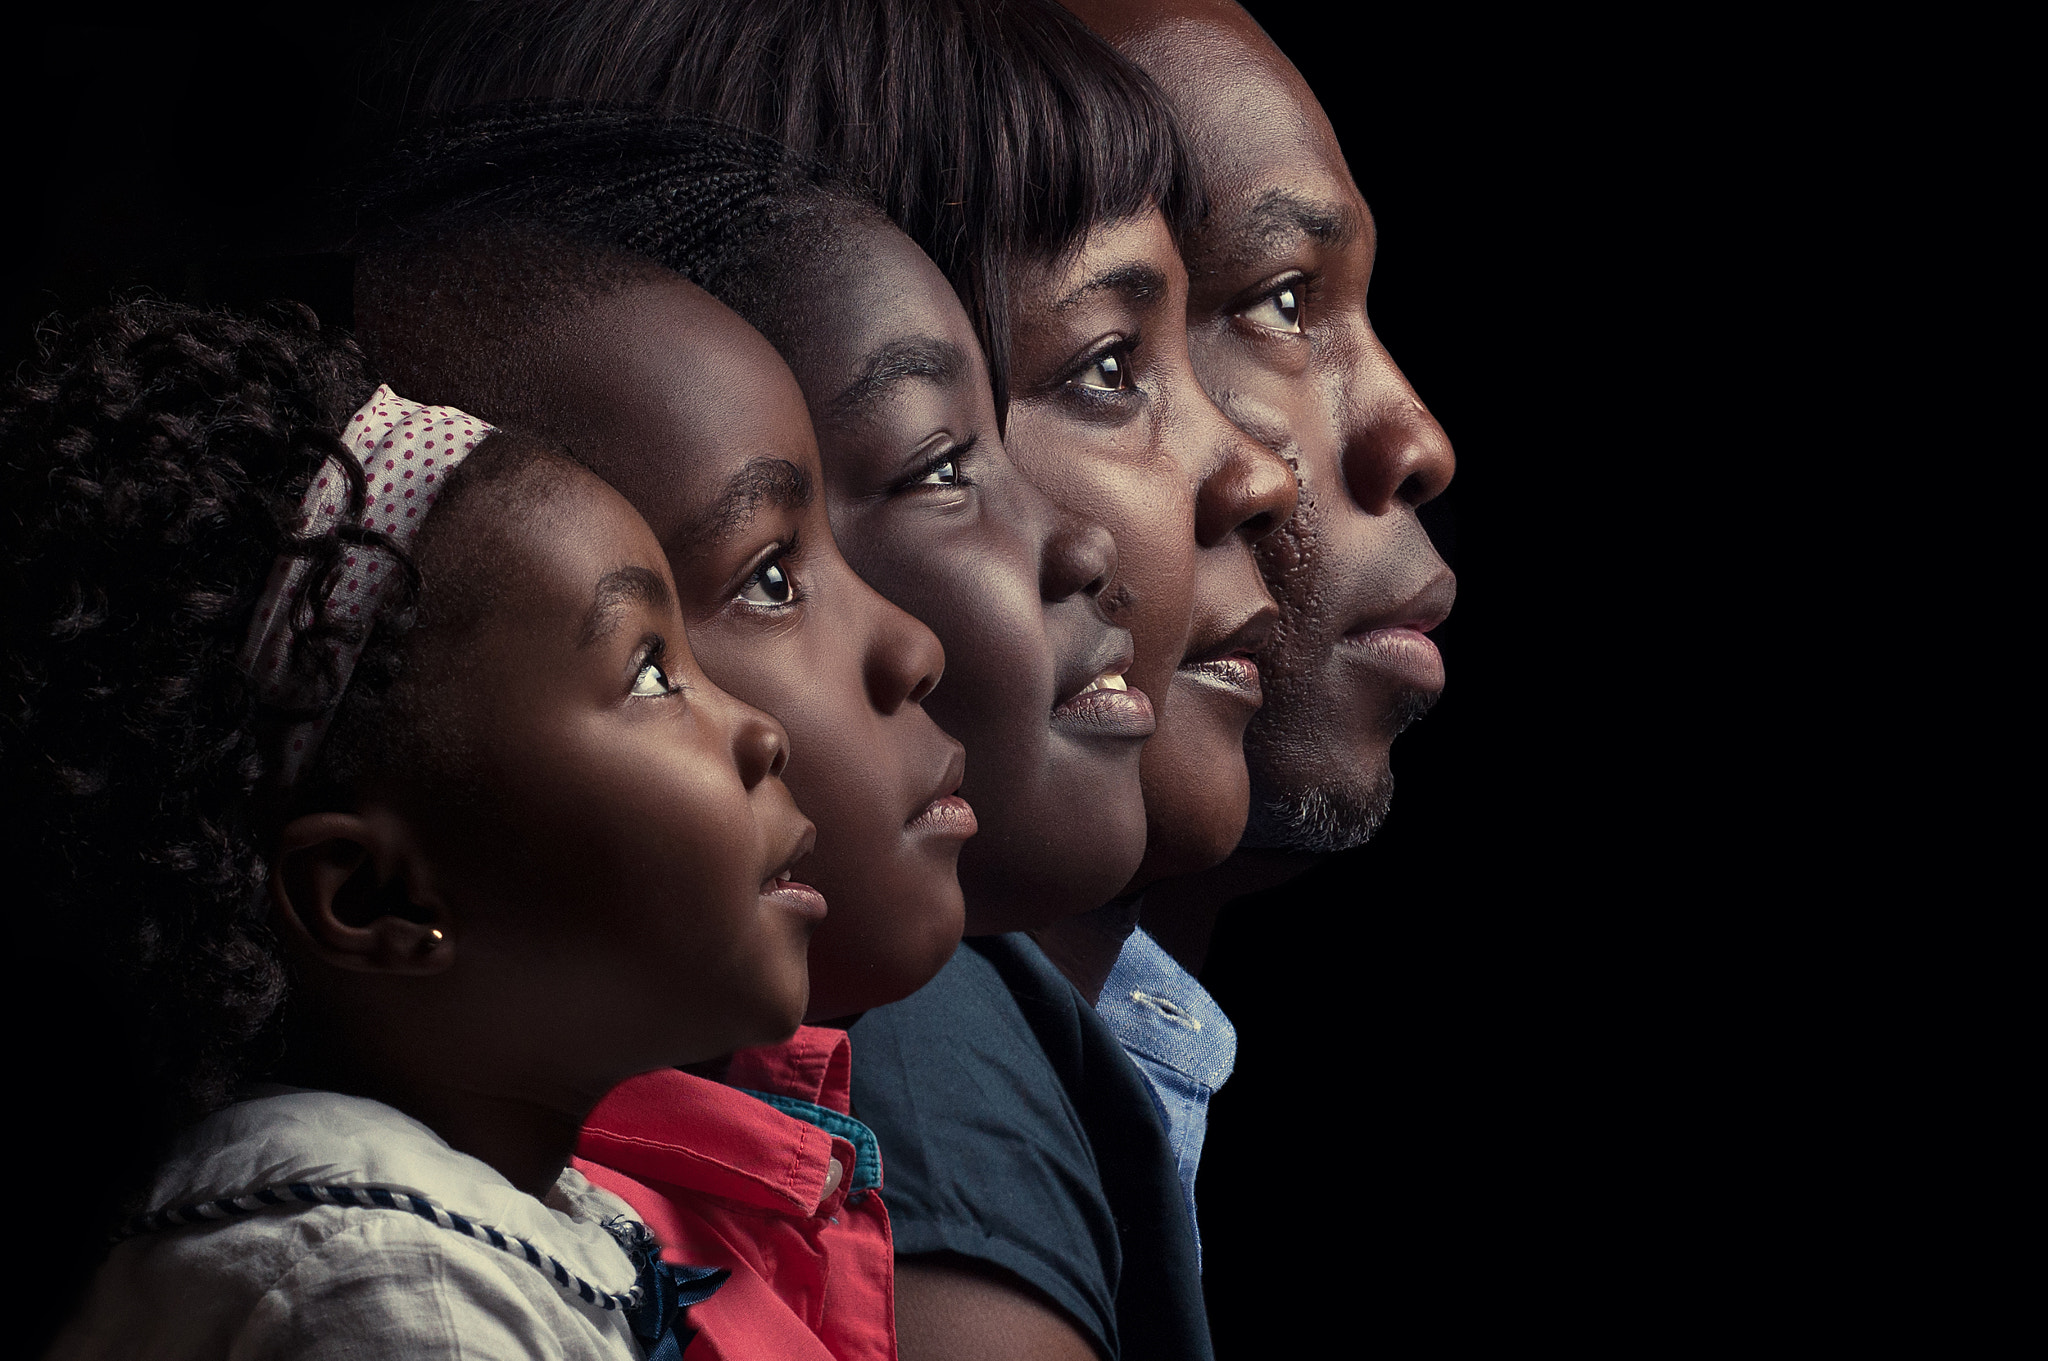 Photograph A Family Portrait by Rey Vladyc Mangouta on 500px